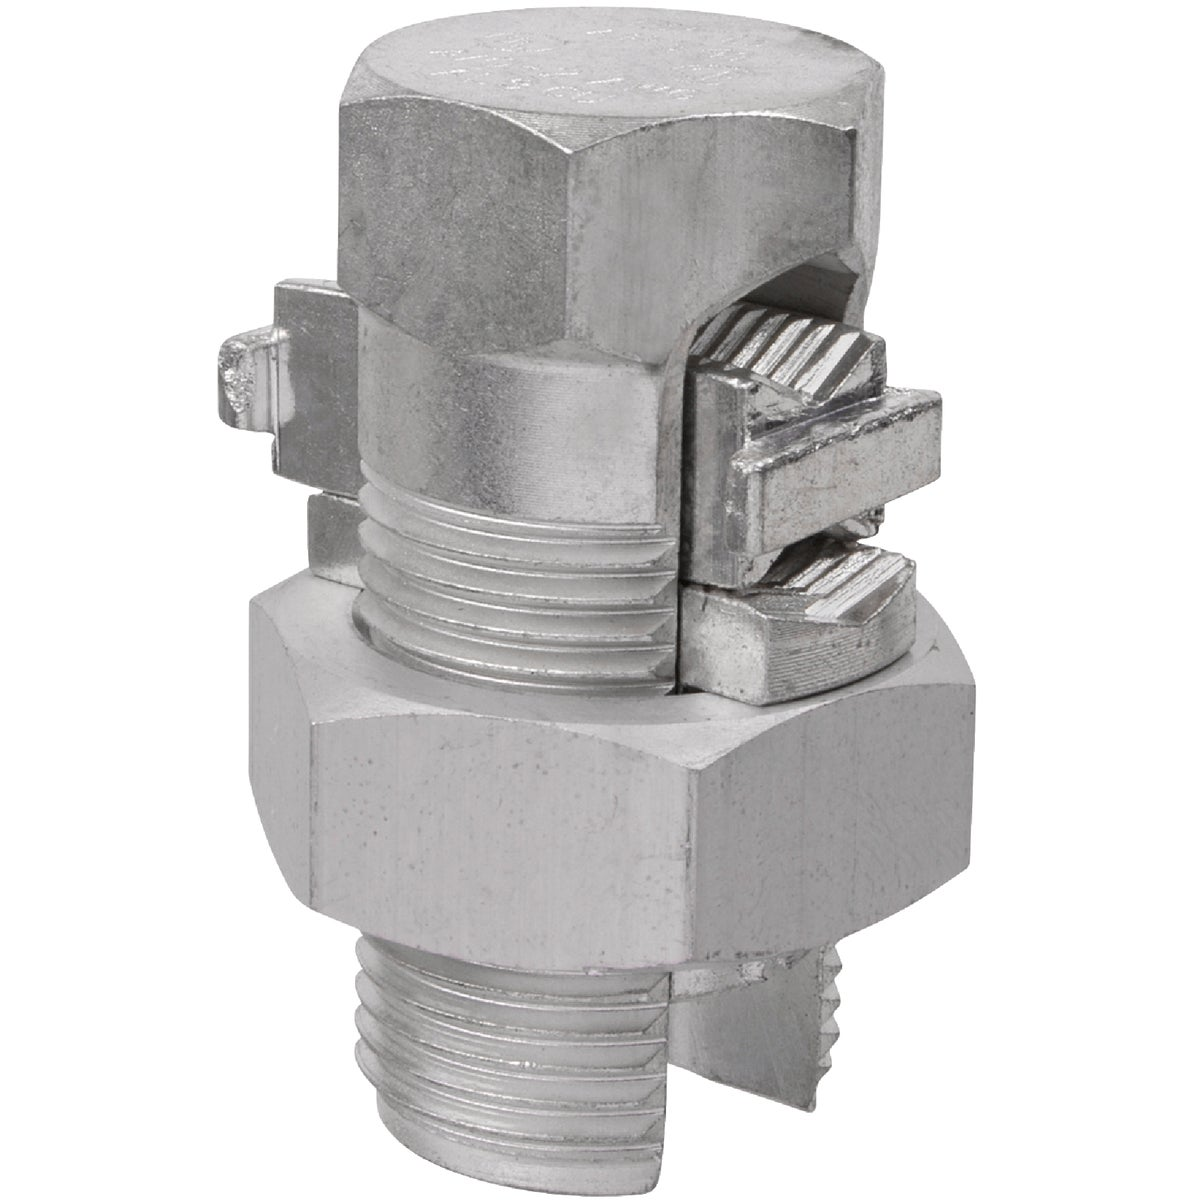 SPLIT BOLT CONNECTOR - EAPS4125 by Thomas & Betts